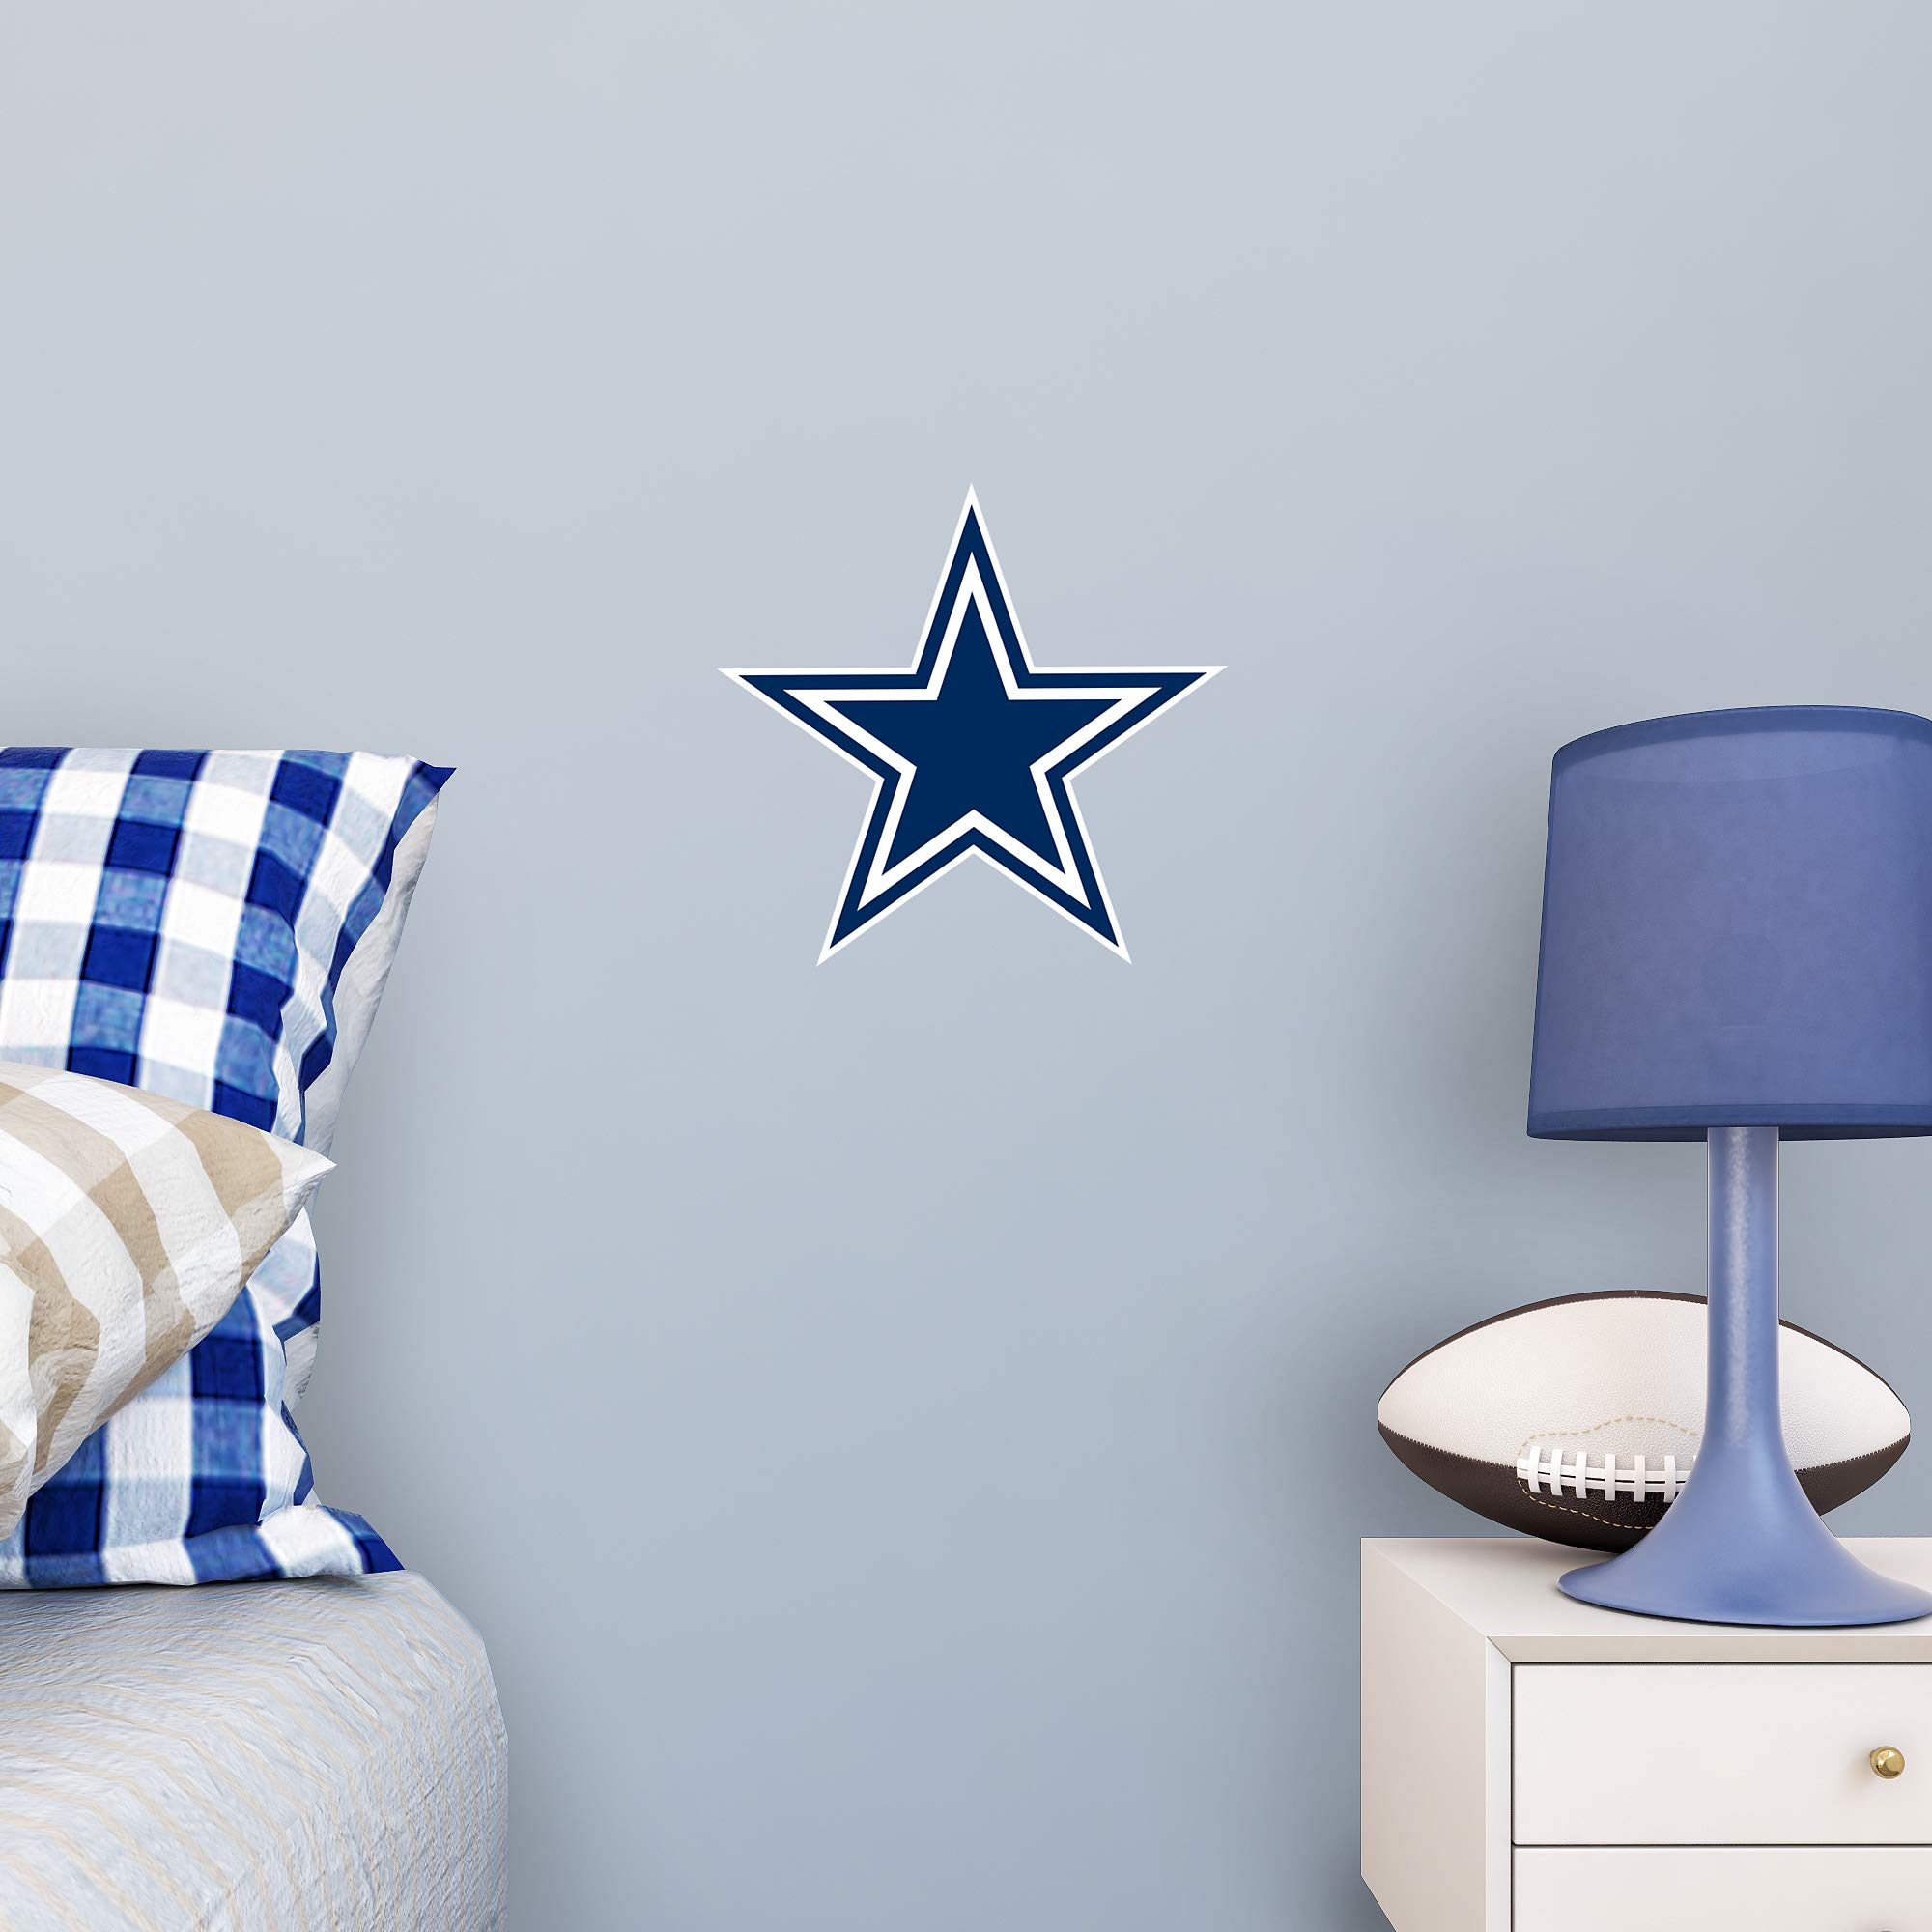 Fathead NFL Dallas Cowboys Officially Licensed Logo Removable Wall Decal, Multicolor, Big - 89-03349 by FATHEAD